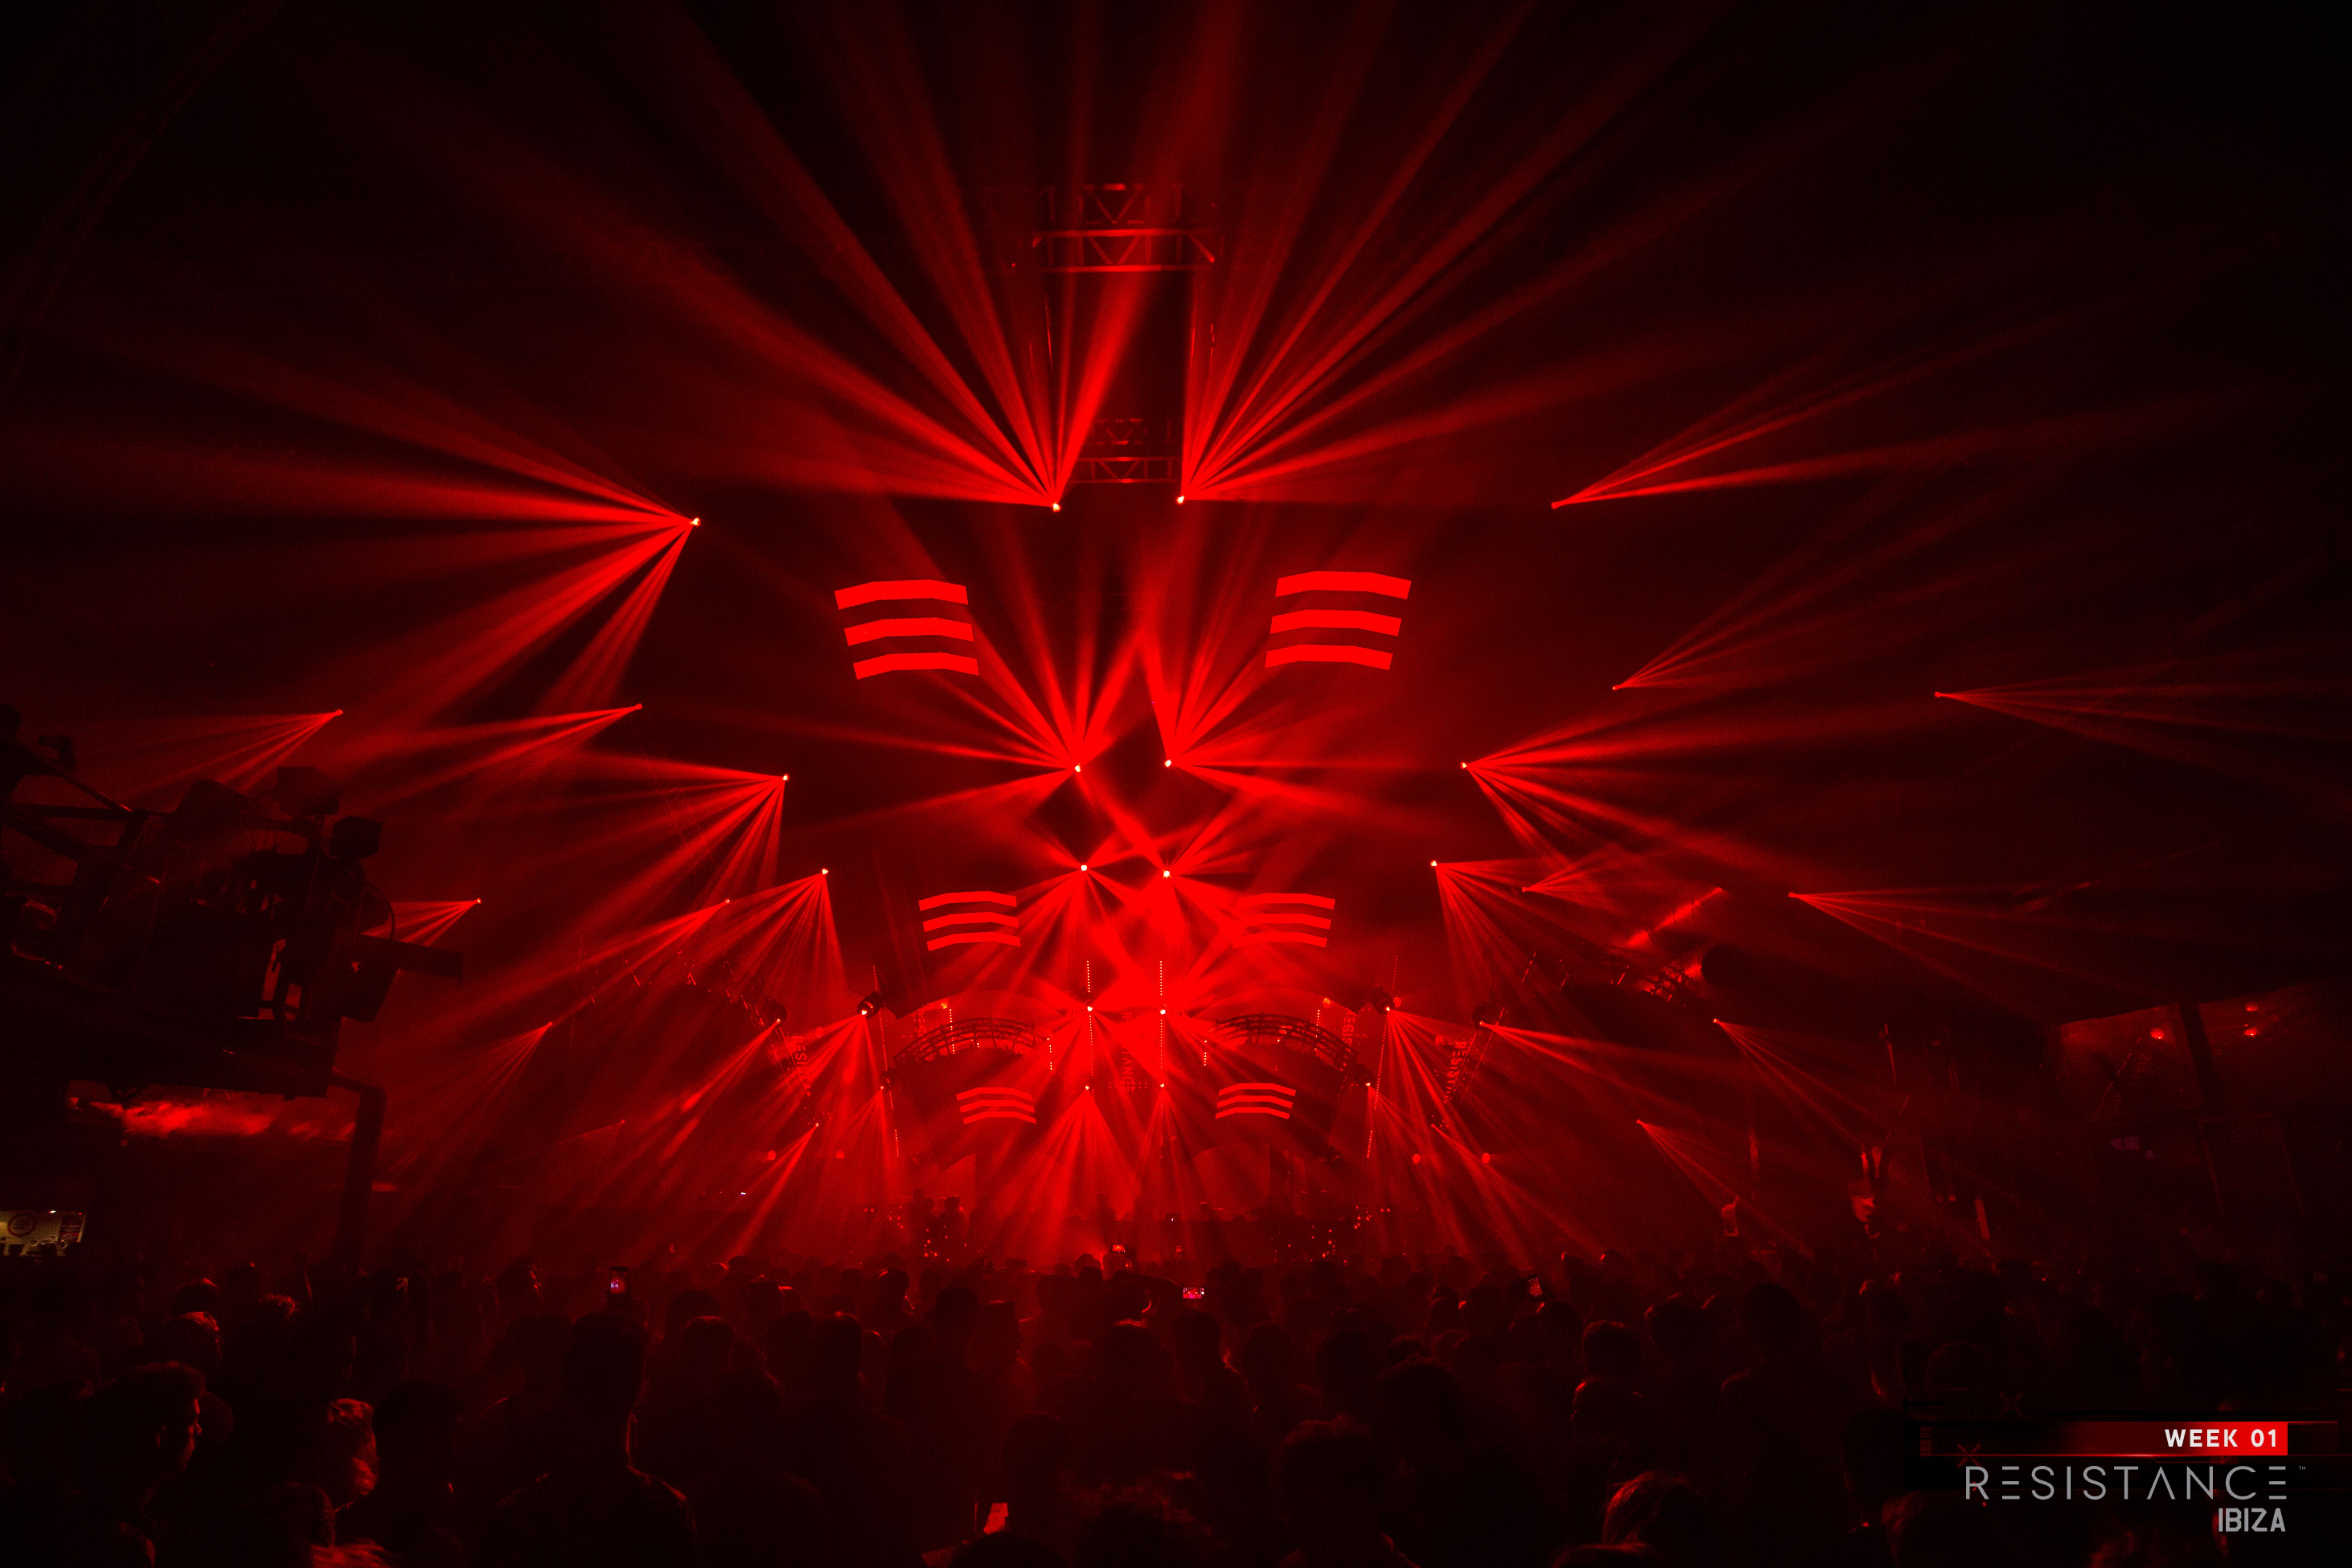 RESISTANCE Ibiza Brings The Heat To The World's Biggest Nightclub This Summer